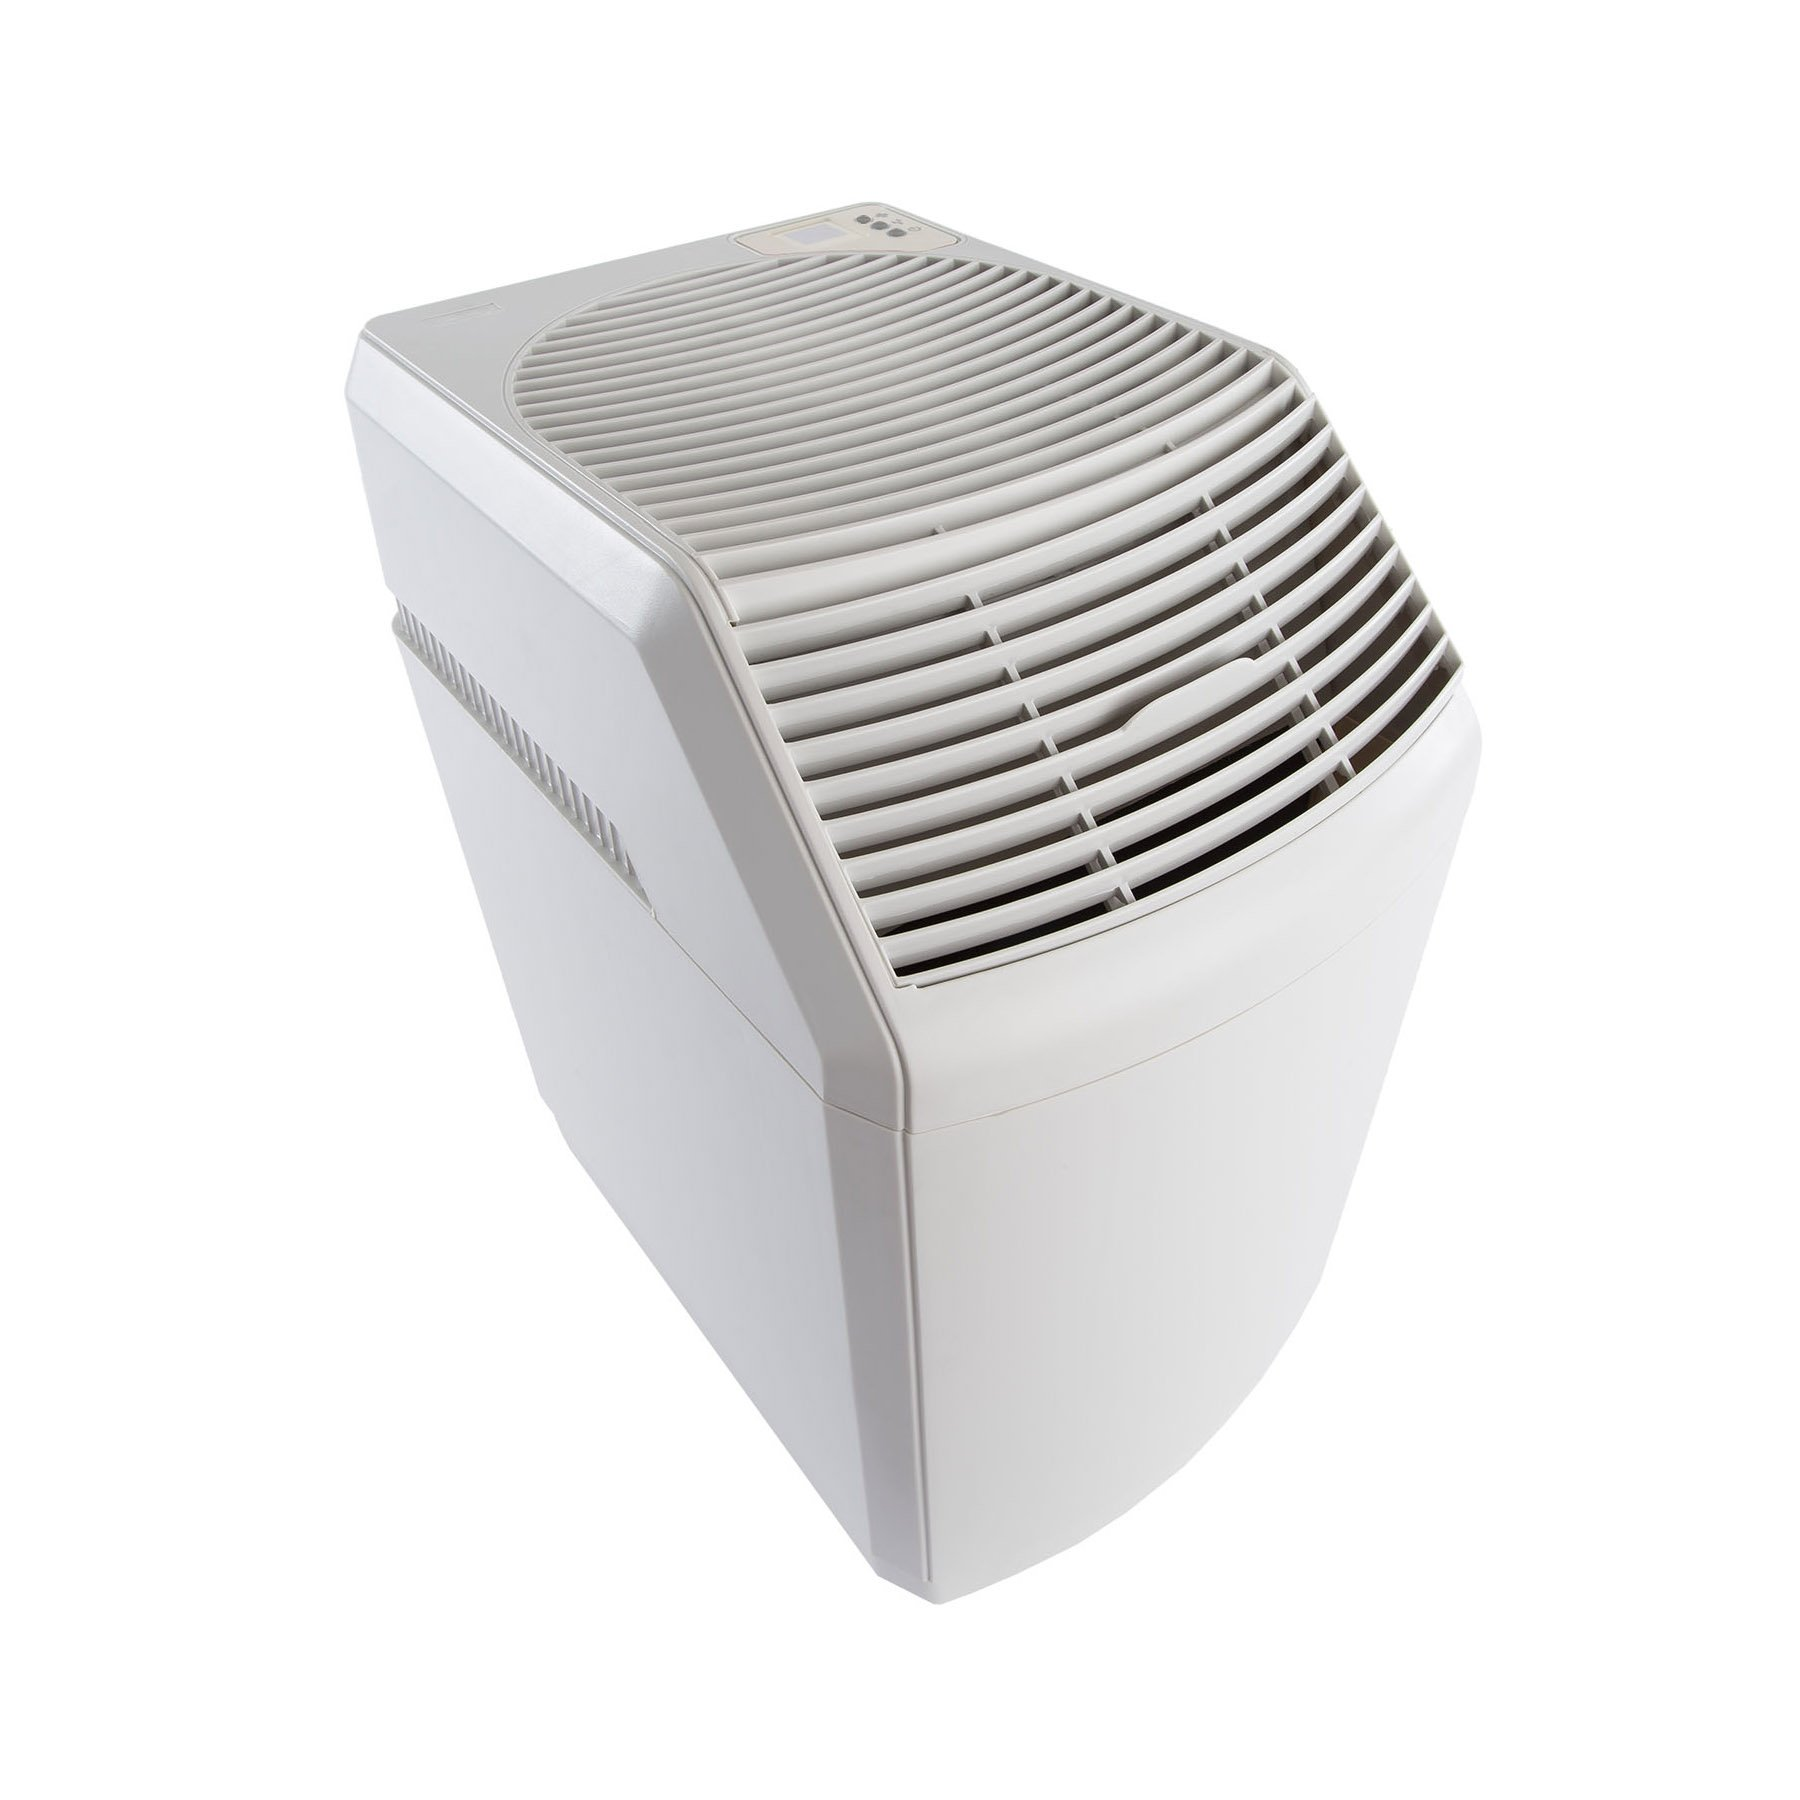 AIRCARE 831000 Space-Saver Evaporative Humidifier, White by Essick Air (Image #2)